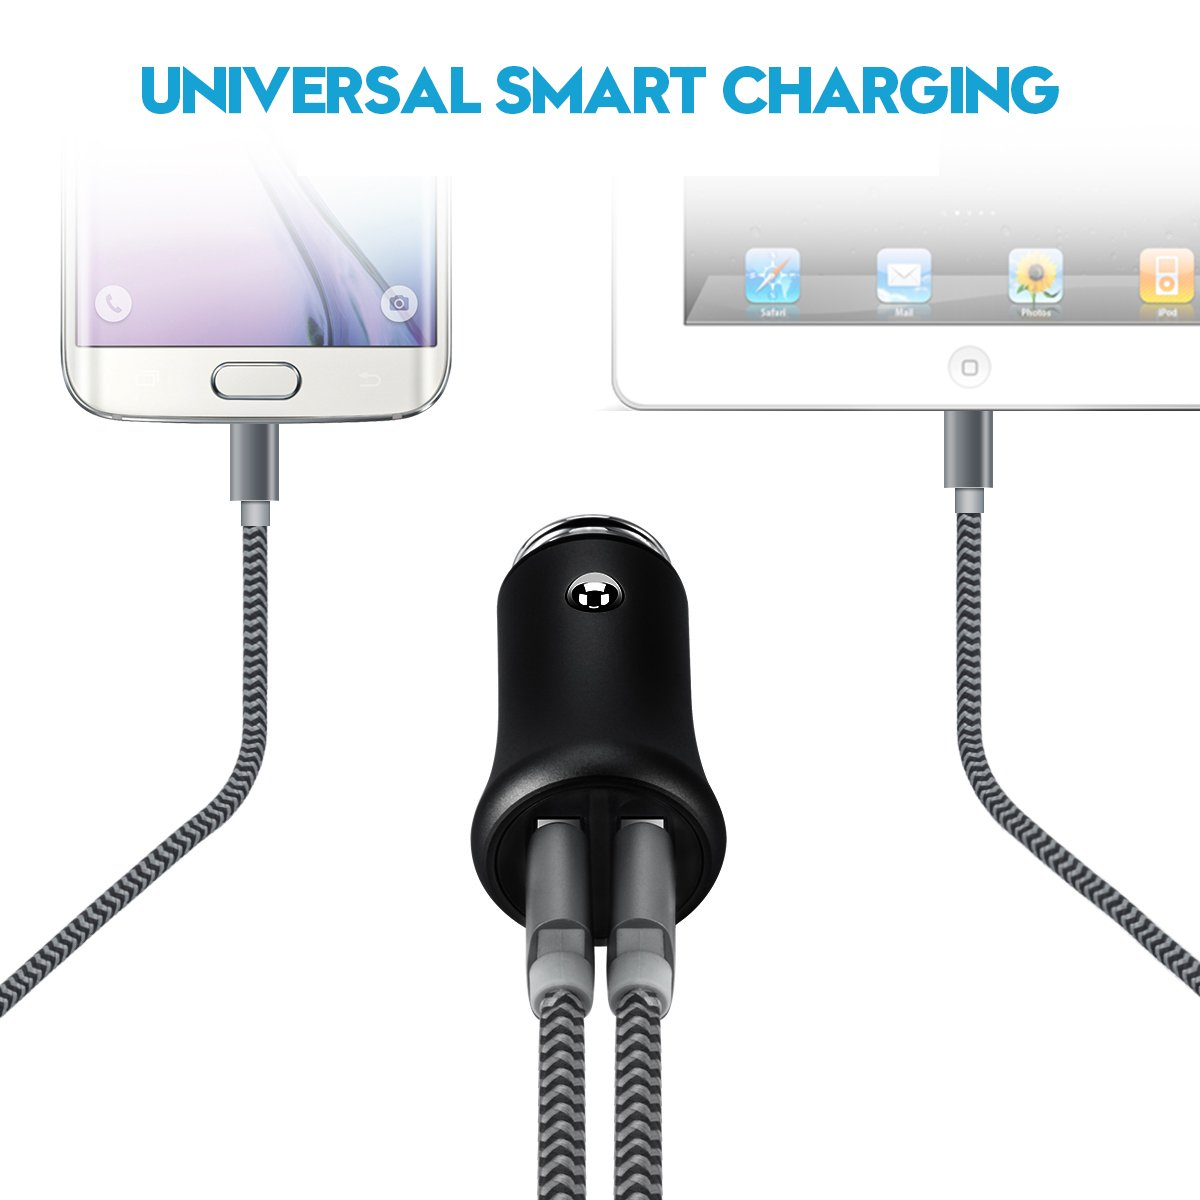 Amazon.com: USB Car Charger, Shnvir Dual Port Car Charger Adapter 2.4A for iPhone X, 8, 7, 6s, 6 & Plus, iPad, Samsung Galaxy S7, S8, Note 8, ...